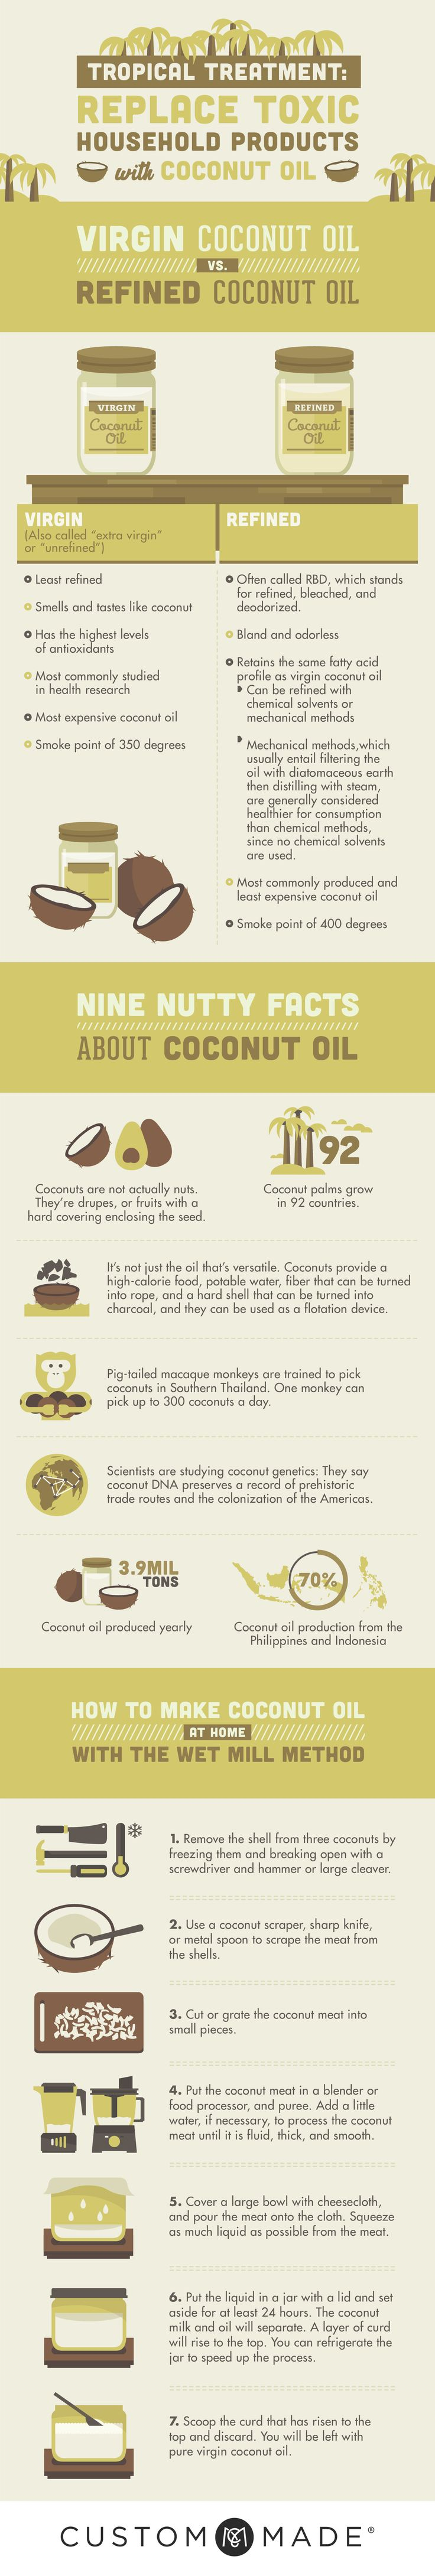 Replace Toxic Household Products with Coconut Oil [Infographic]   ecogreenlove